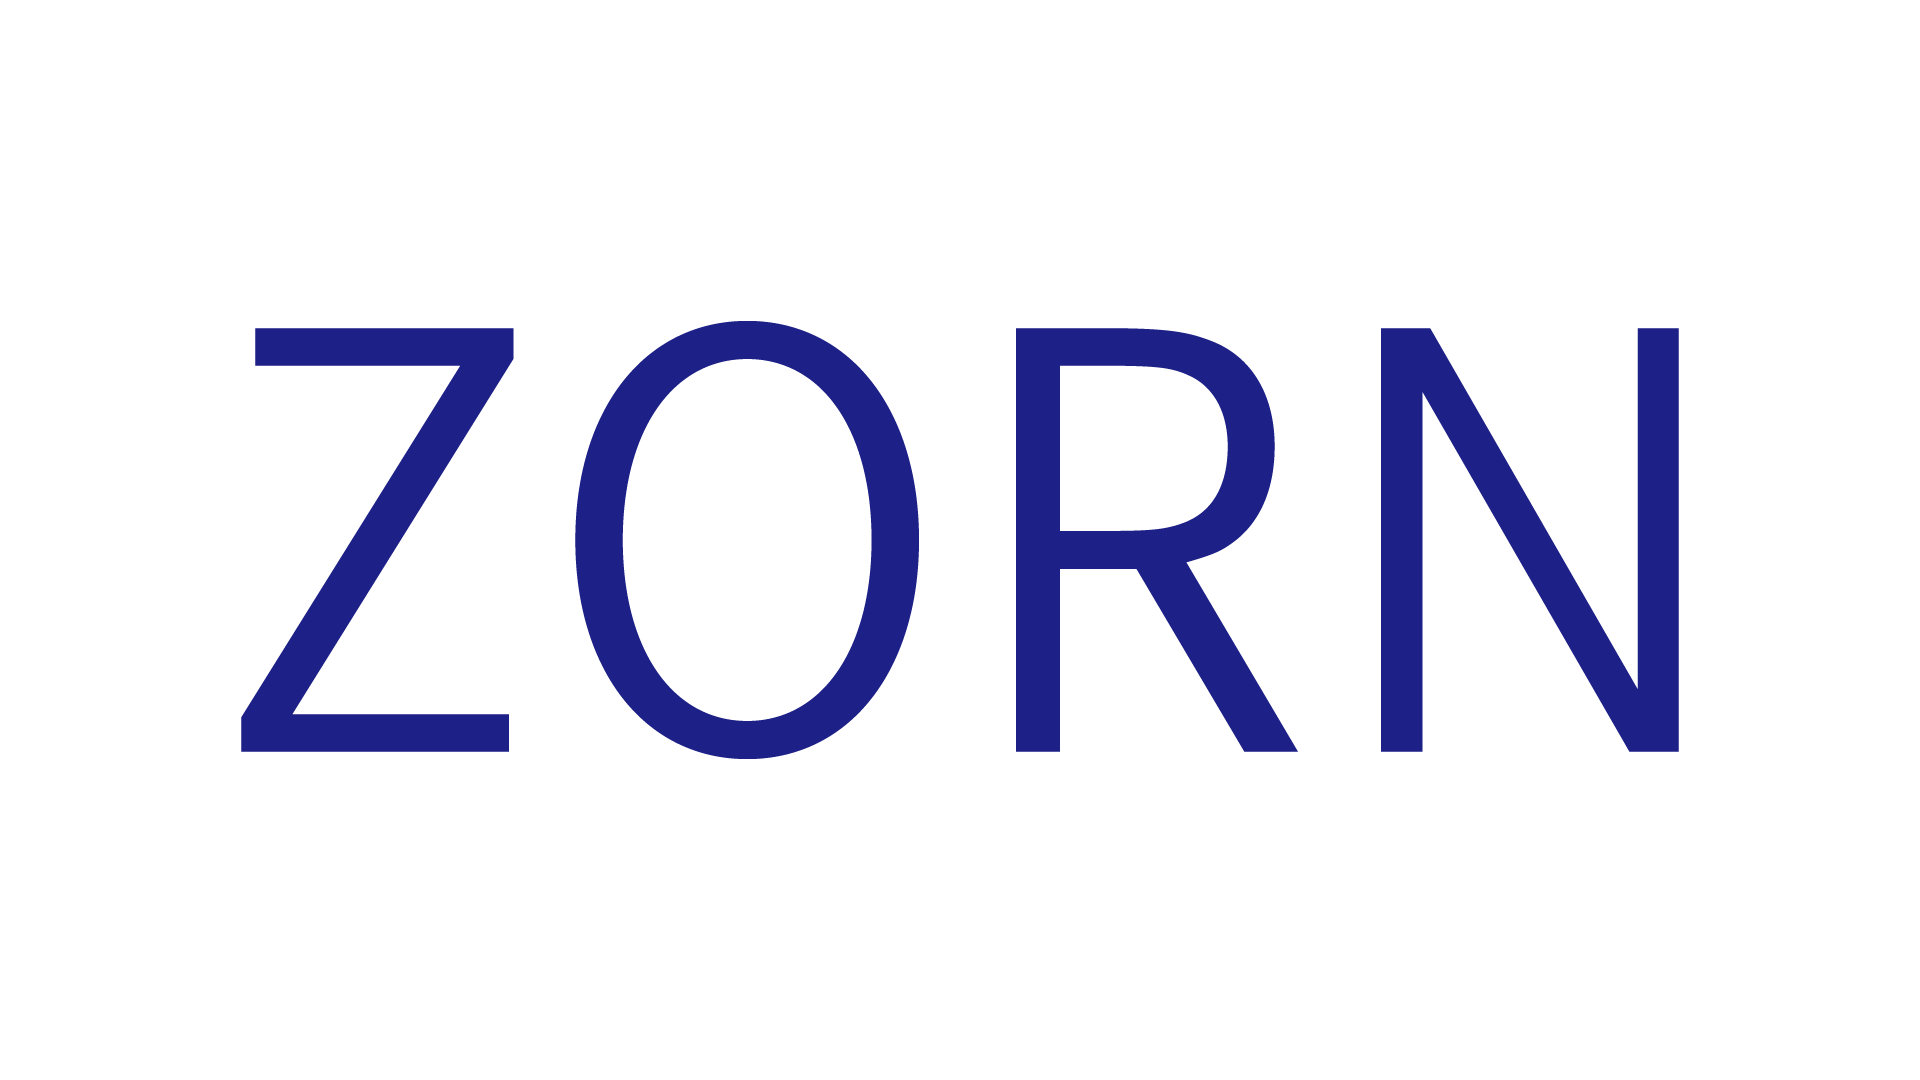 ZORN Official Site